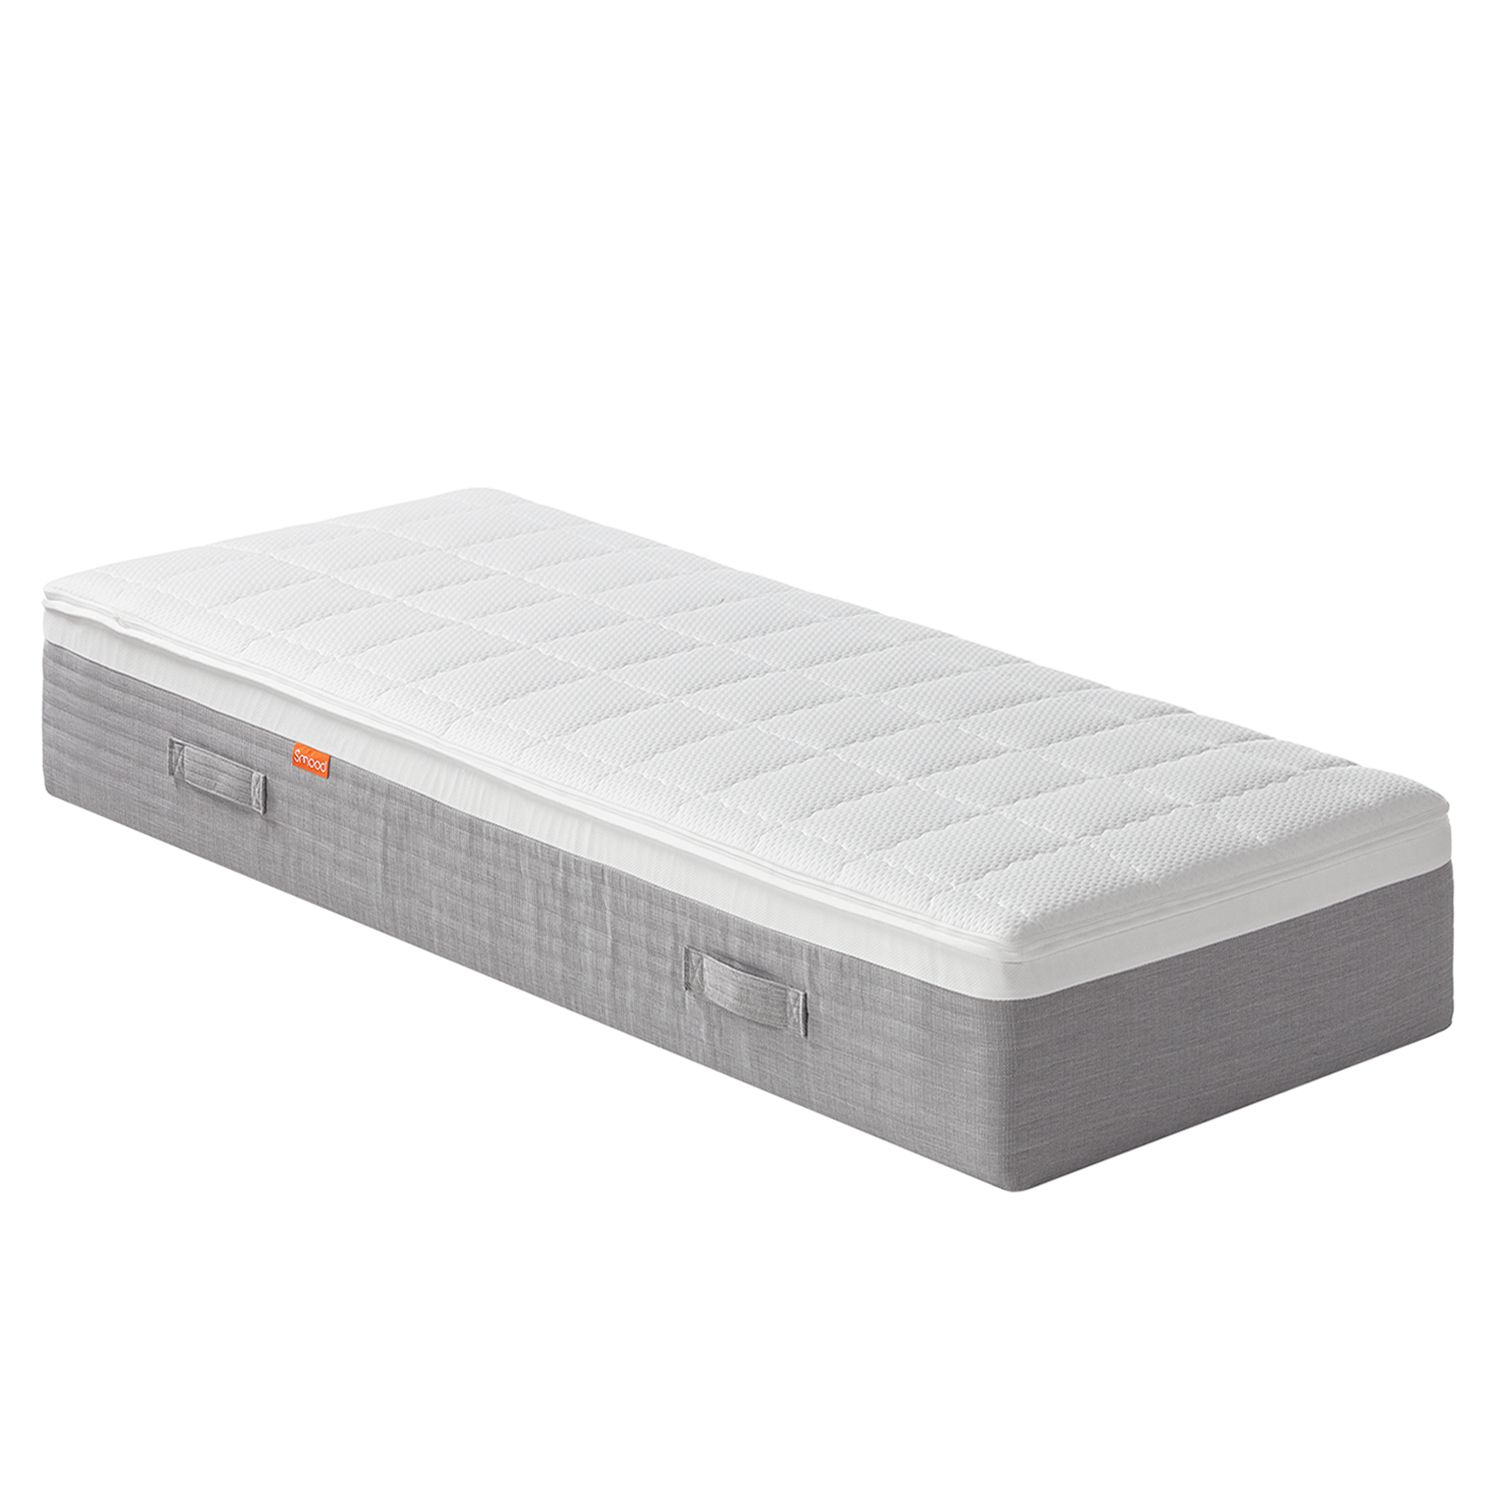 Matelas boxspring Smood Select - 80 x 200cm, Smood